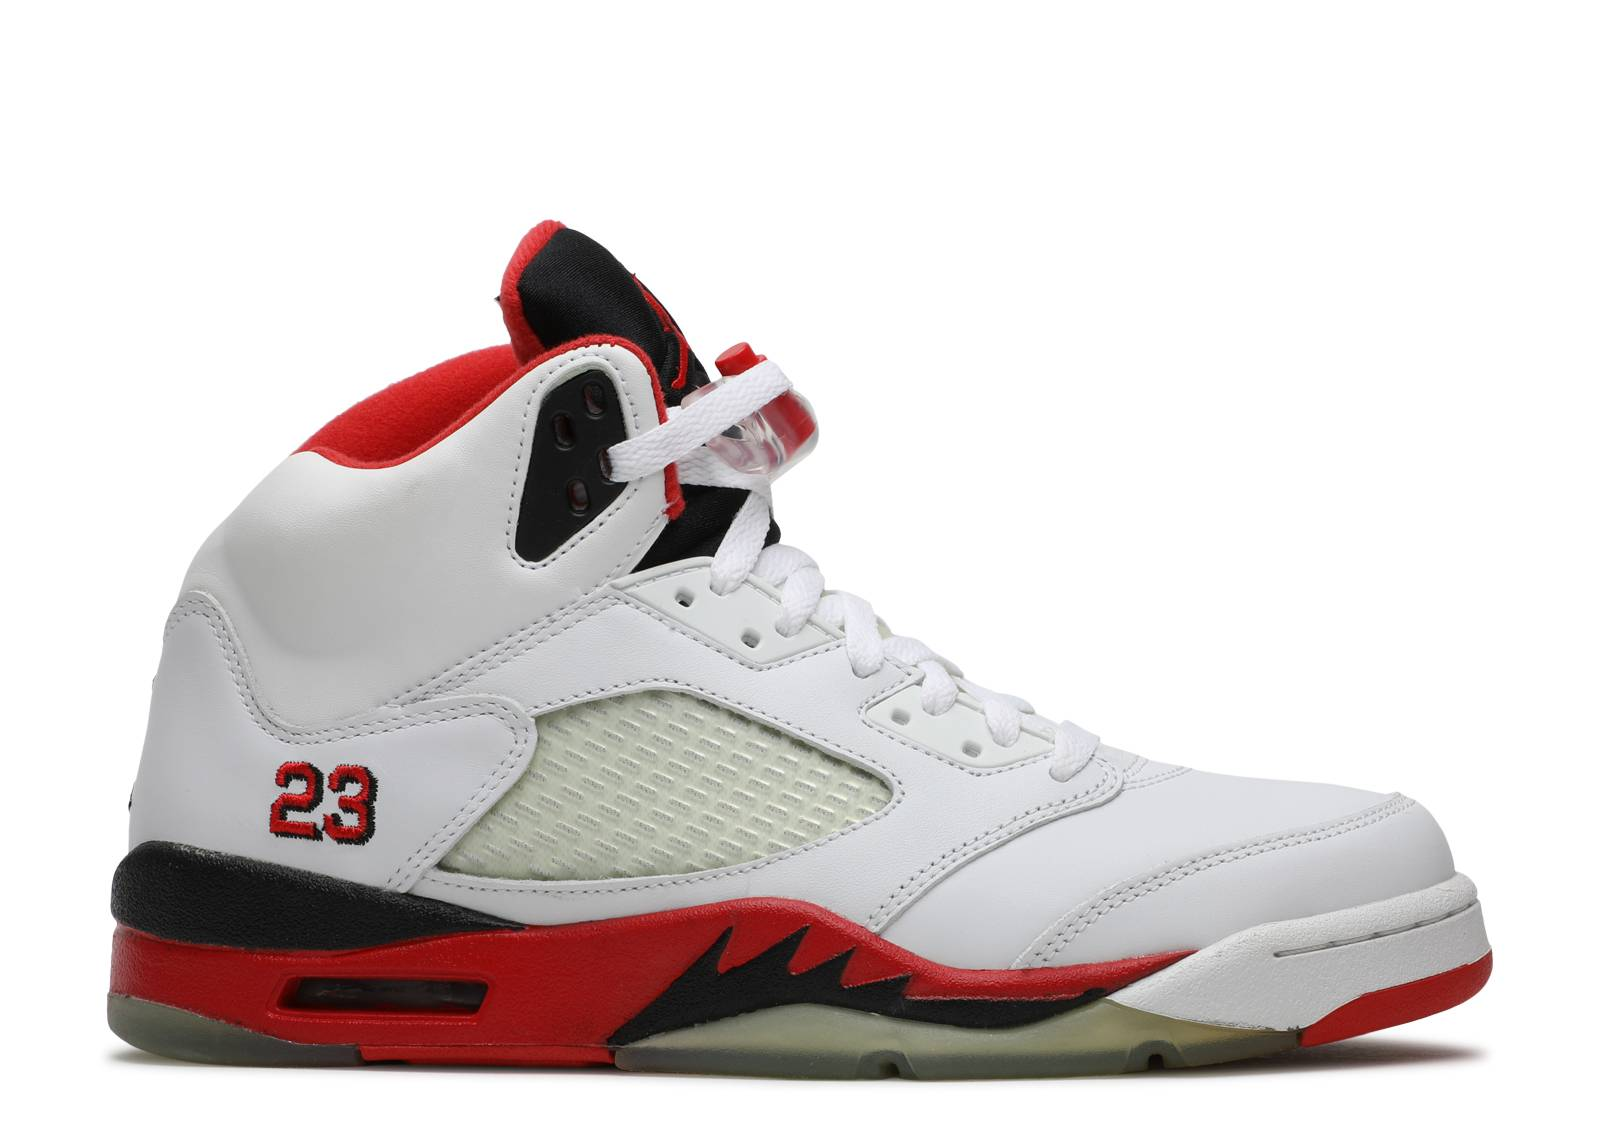 76e619ab8c9972 Air Jordan 5 Retro - Air Jordan - 136027 162 - white fire red-black ...